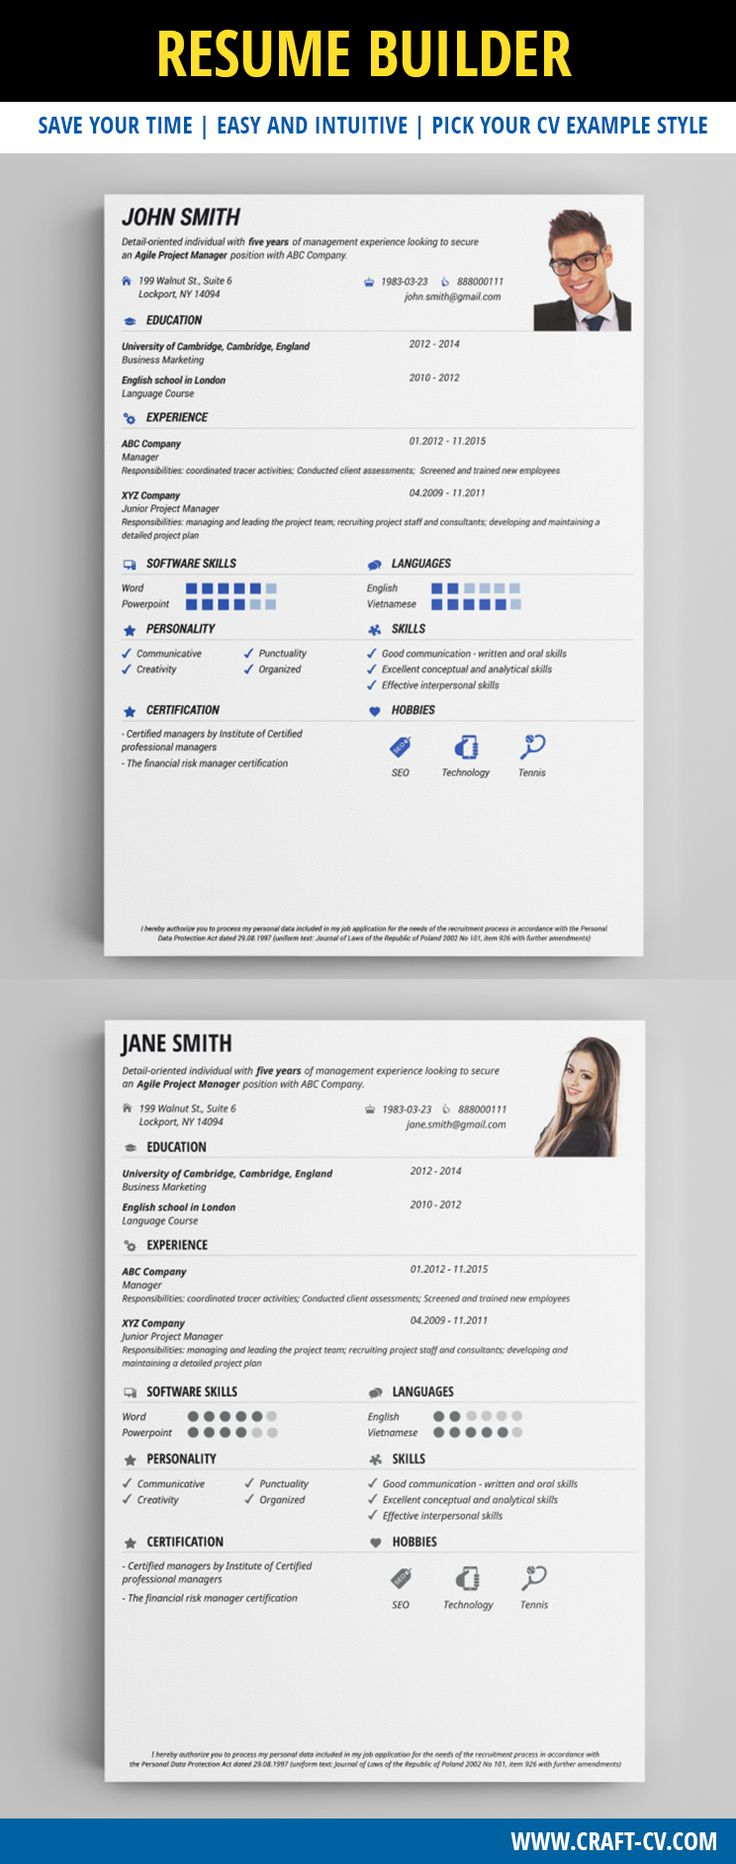 Clear & Fresh Resume Template #resume #creativecv